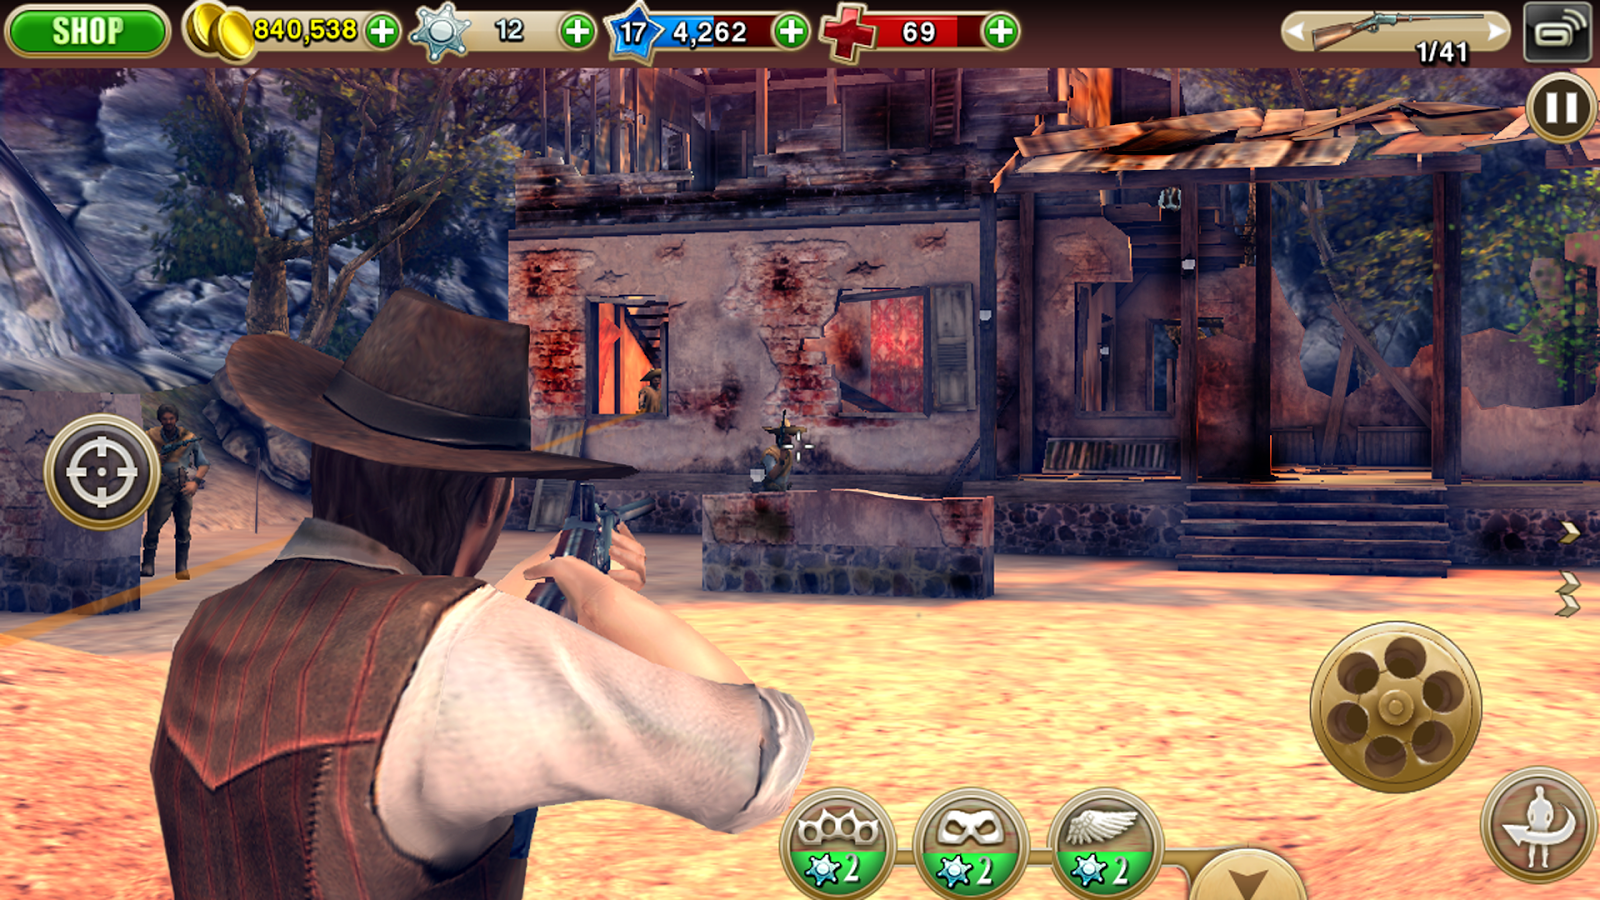 Six-Guns: Gang Showdown Screenshot 5